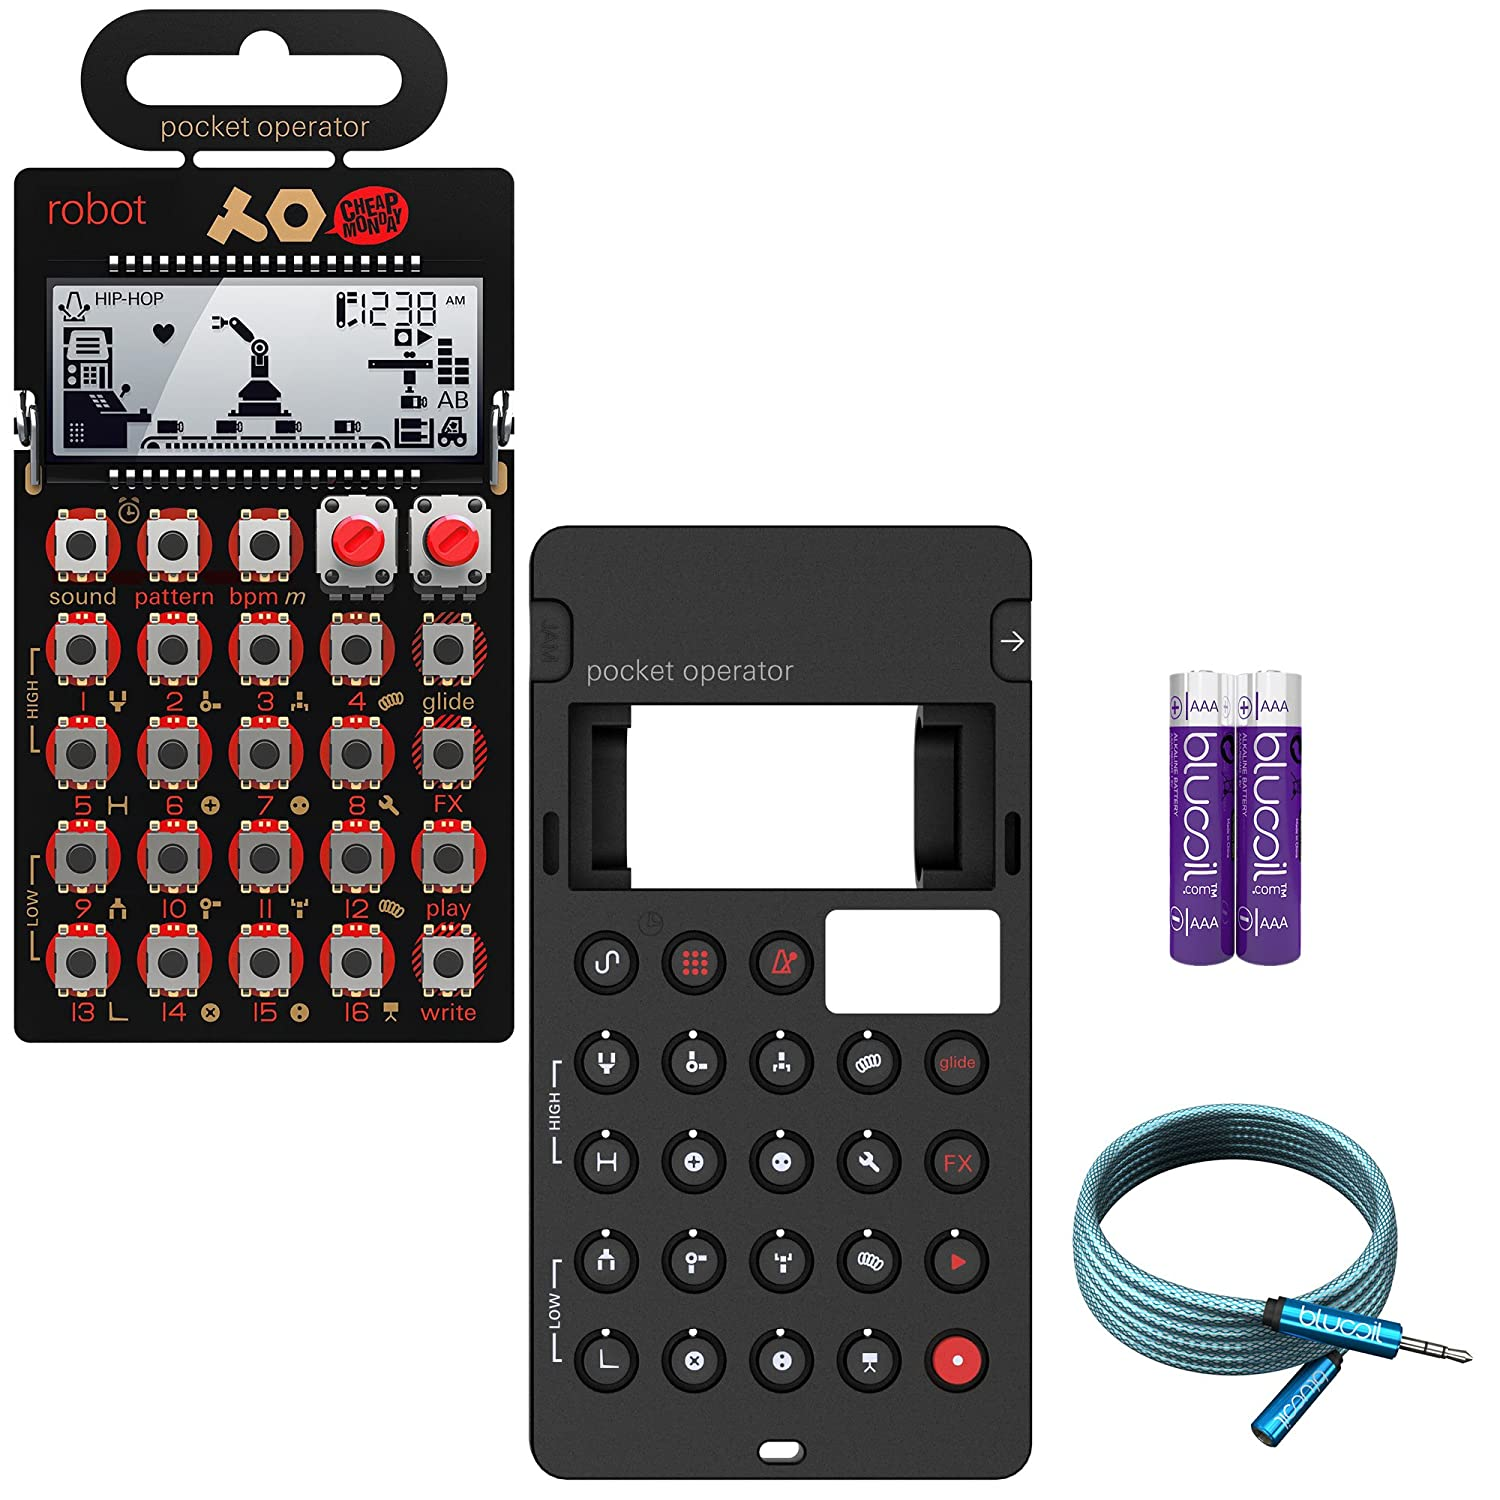 Teenage Engineering PO-28 Robot Performance Synthesizer - BUNDLED WITH - CA-28 Silicone Case, Blucoil 6-Ft Extension Cable AND 2-Pack of AAA Batteries